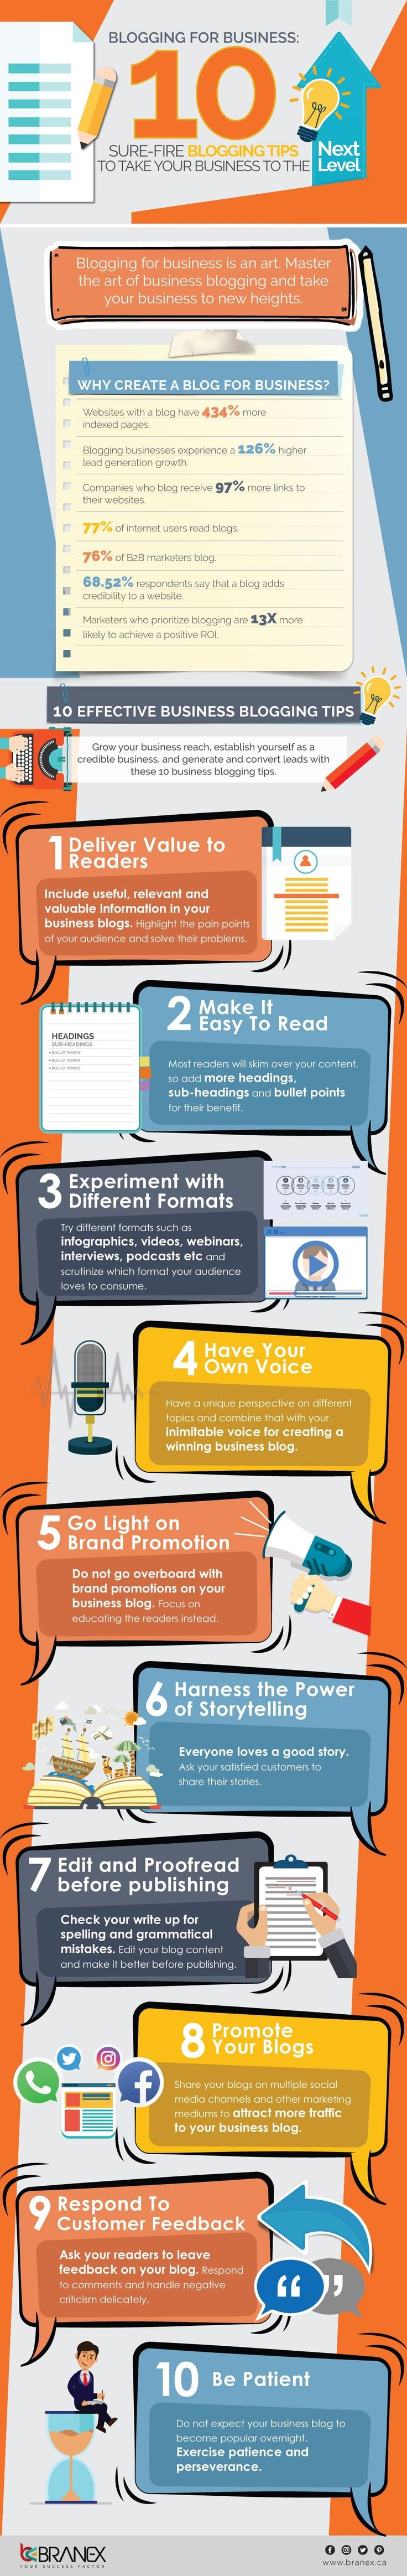 Blogging For Business: 10 Sure-Fire Blogging Tips To Take Your Business To The Next Level - #infographic